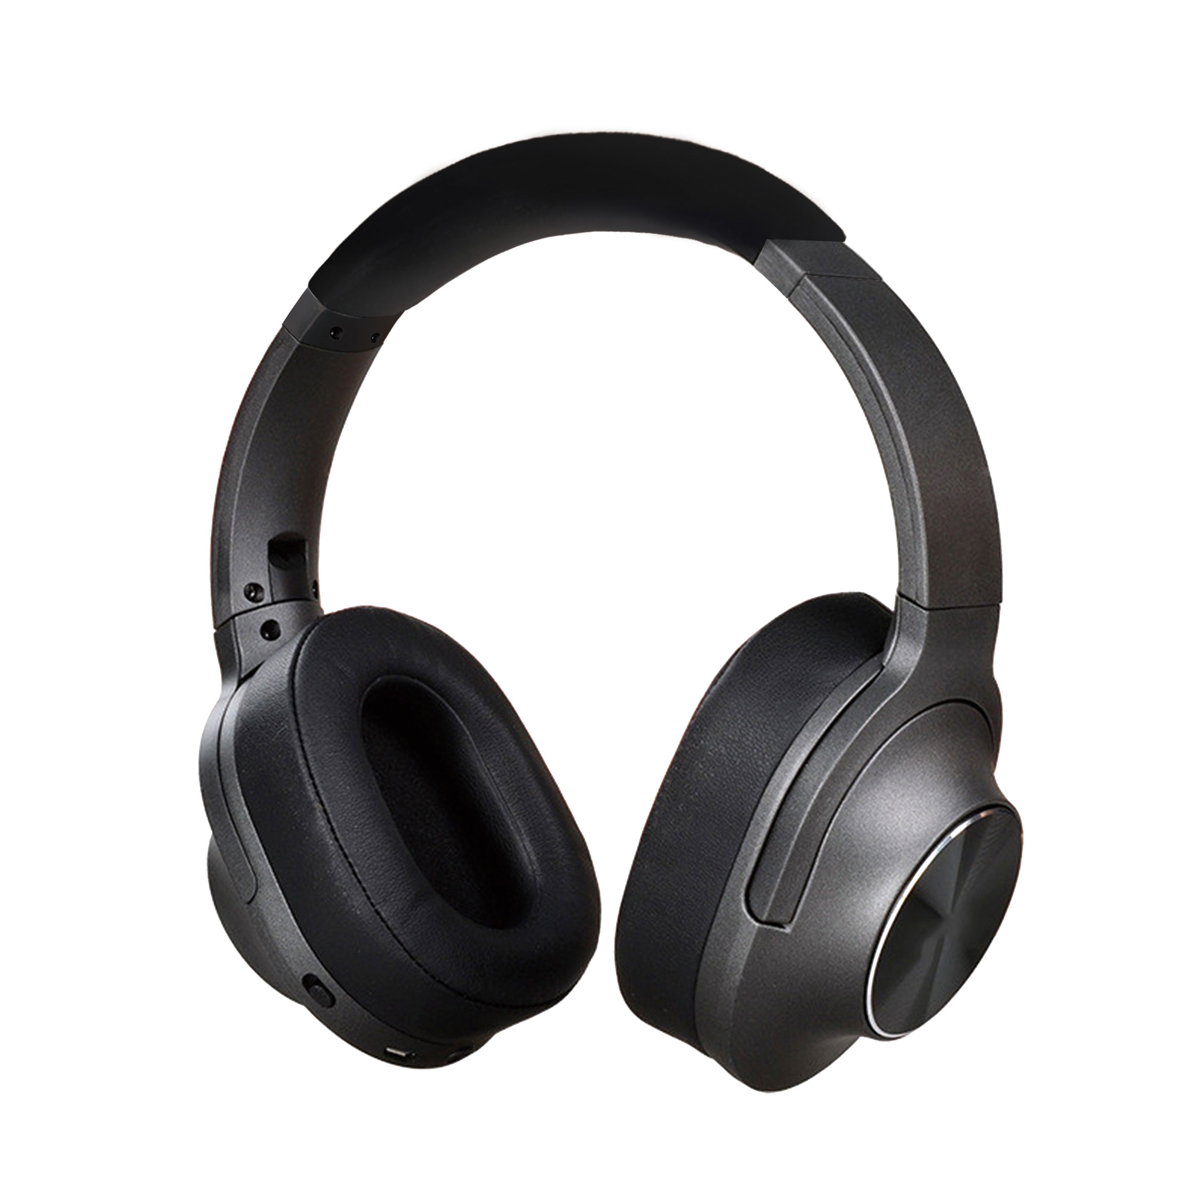 Freestyle ZEN Grey Bluetooth v 5.0 headset, noise cancelling, 500mAh, 90 uur standby, 20 uur bluetooth + noise cancelling, overear model